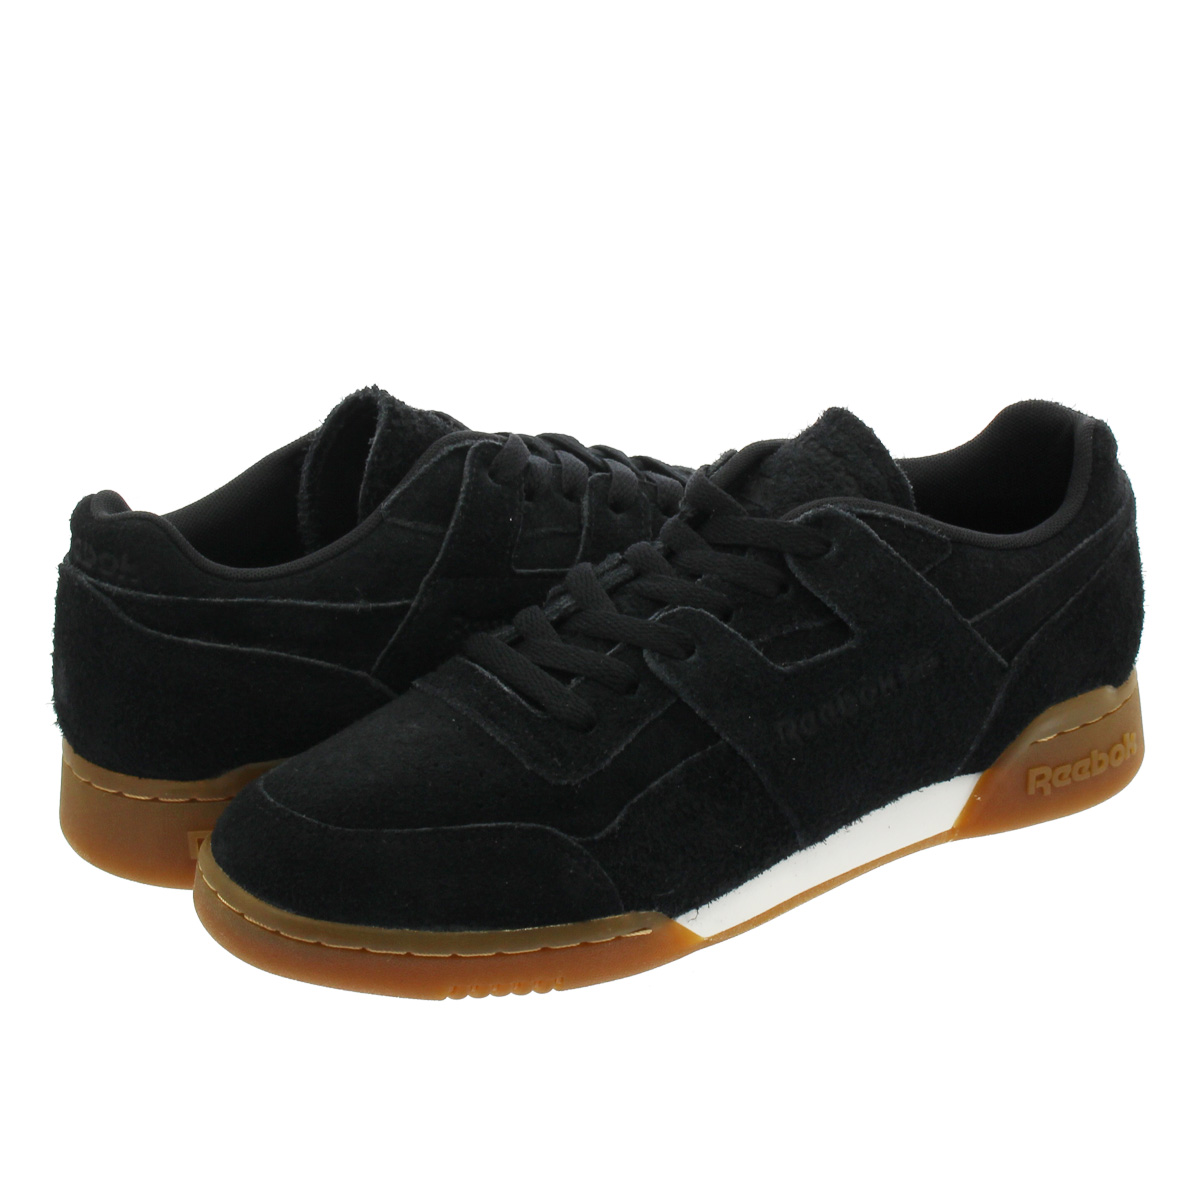 Reebok WORKOUT PLUS SUEDE リーボック ワークアウト プラス スエード BLACK/GUM cn3756